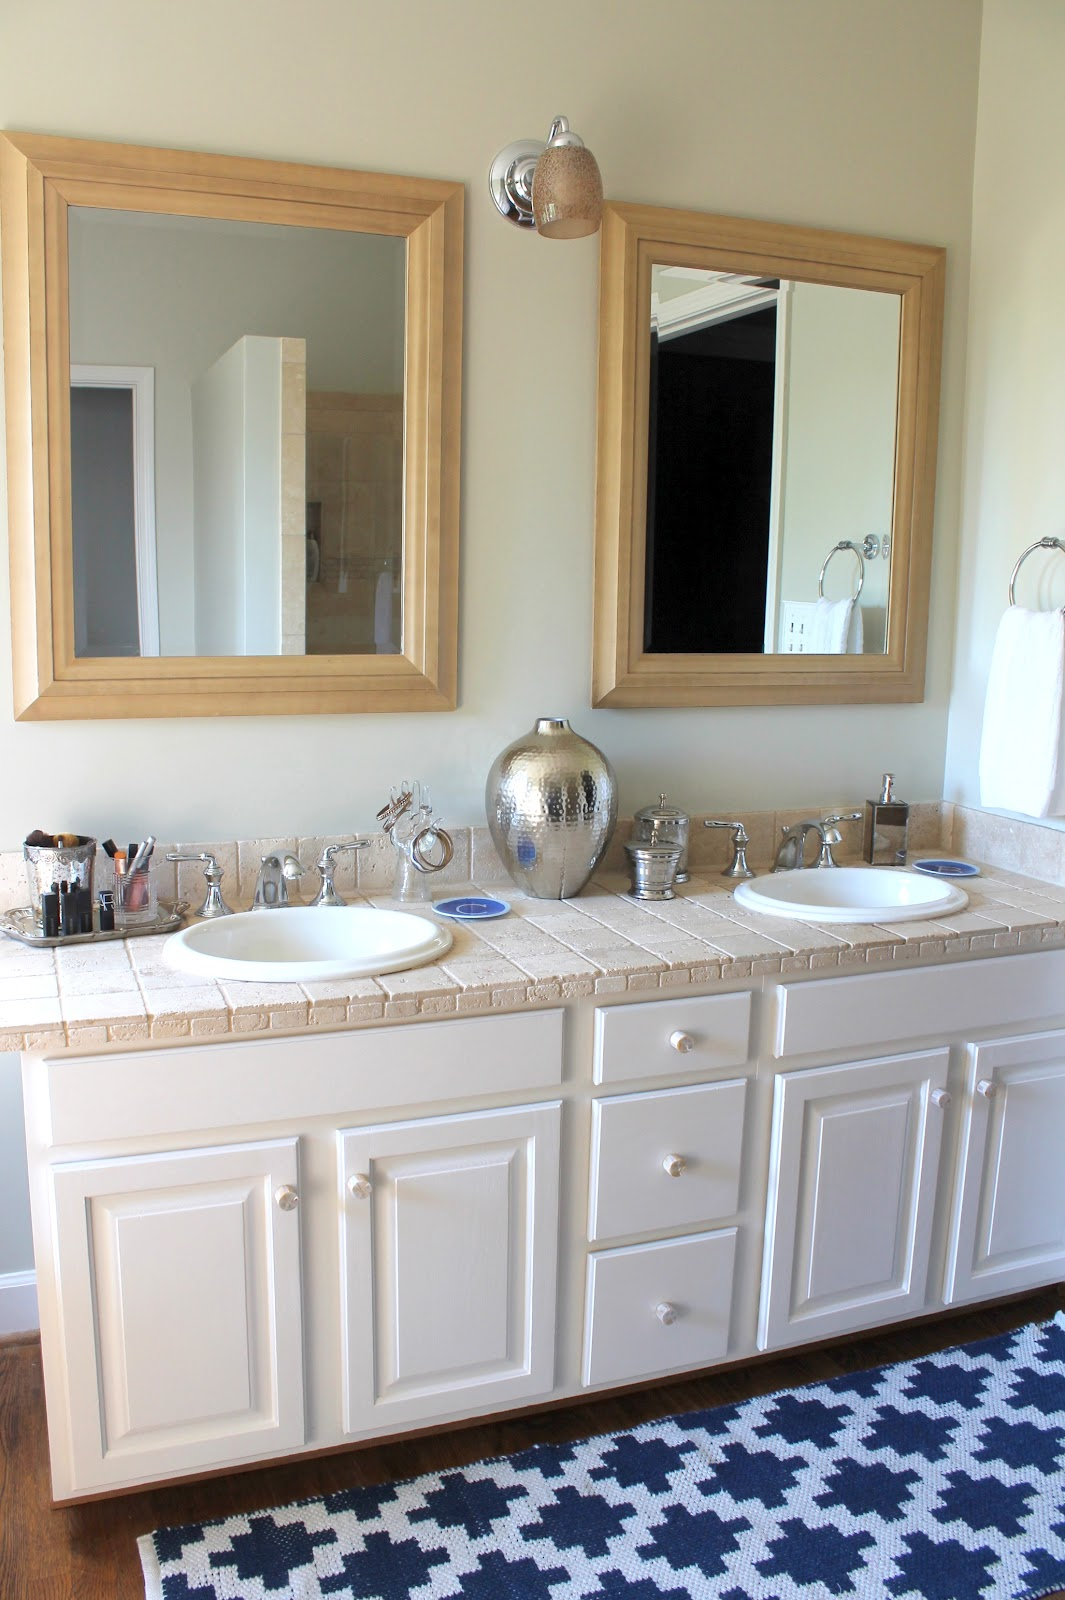 The Big Master Bathroom Debate